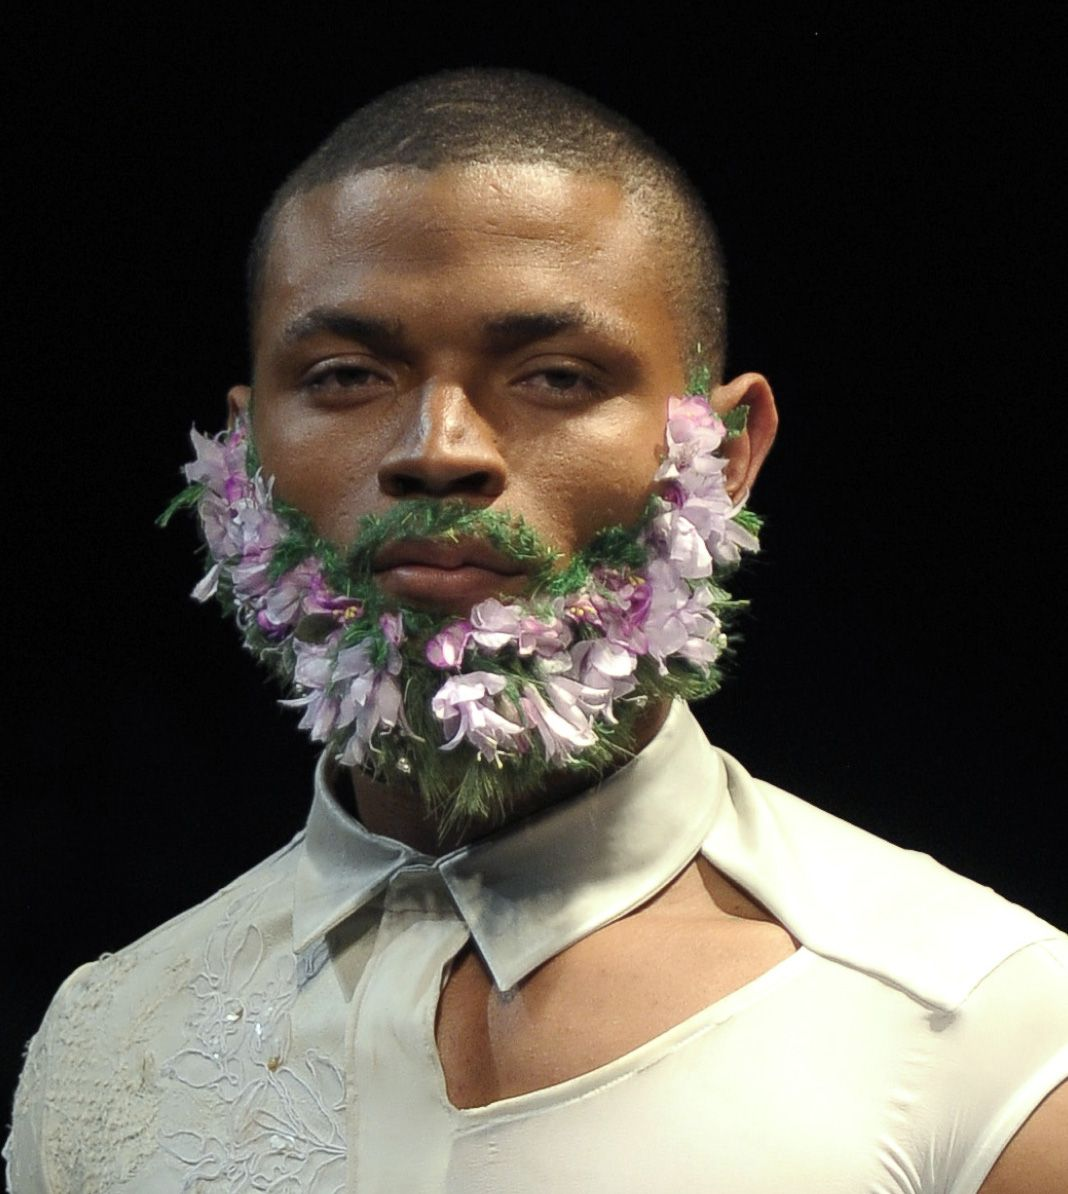 Fabien Verriest S Floral Beards Made Us Smile At La Cambre National School Of Visual Arts Final Ma Show What Is The Point Of Thi Flower Beard Beard Floral